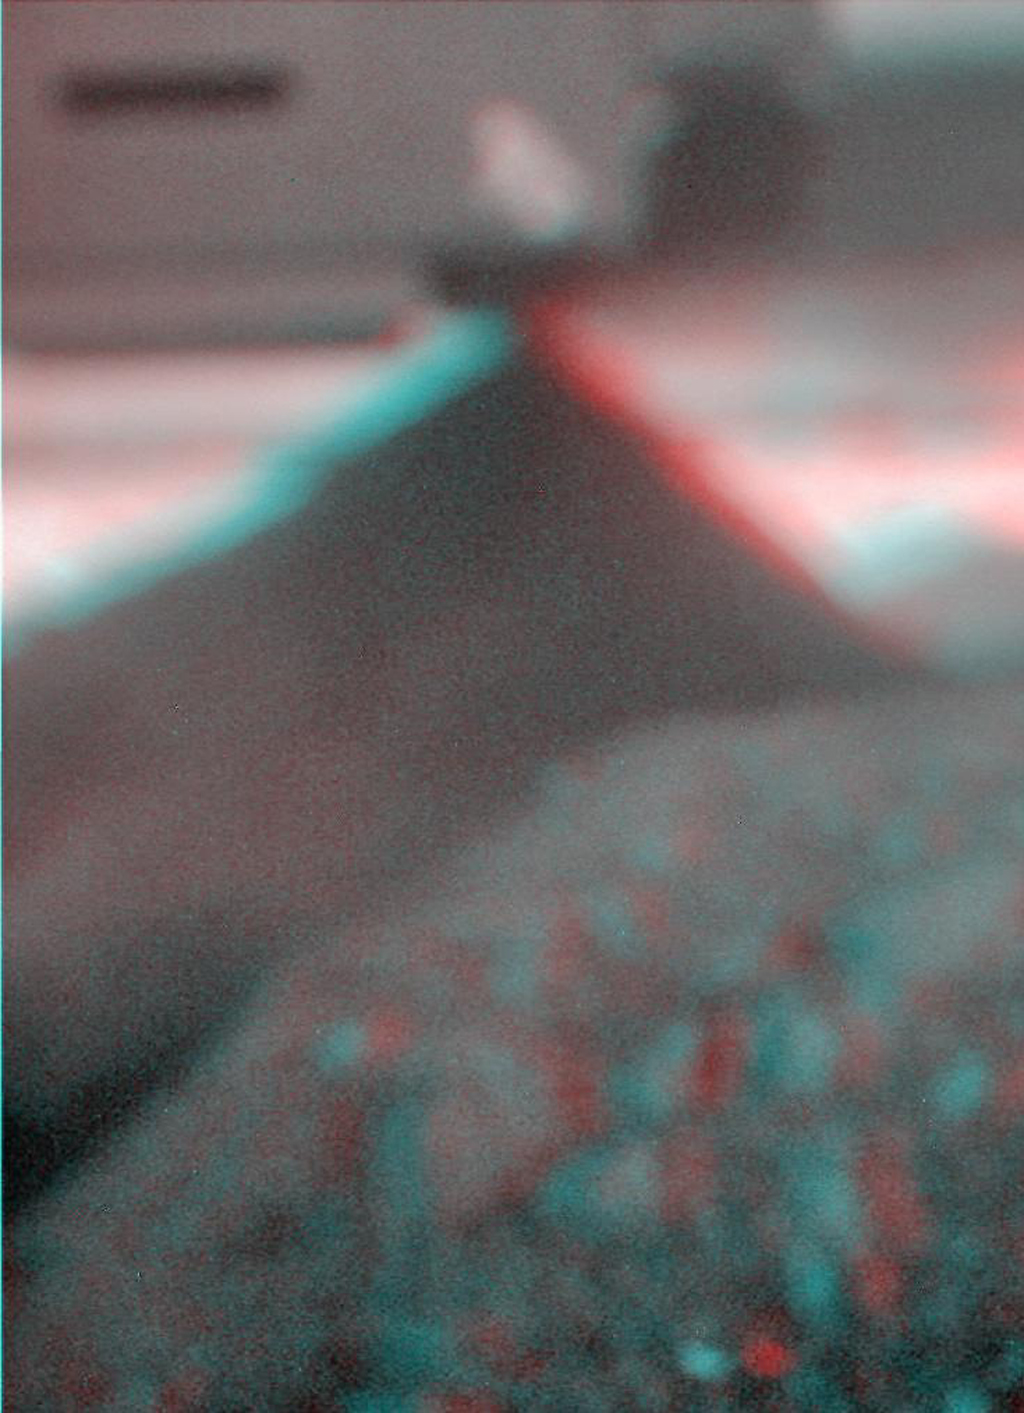 This stereo view combines a pair of images taken by the microscopic imager on NASA's Mars Exploration Rover Spirit during the 1,925th Martian day (sol) of Spirit's mission on Mars (June 2, 2009). 3D glasses are necessary to view this image.